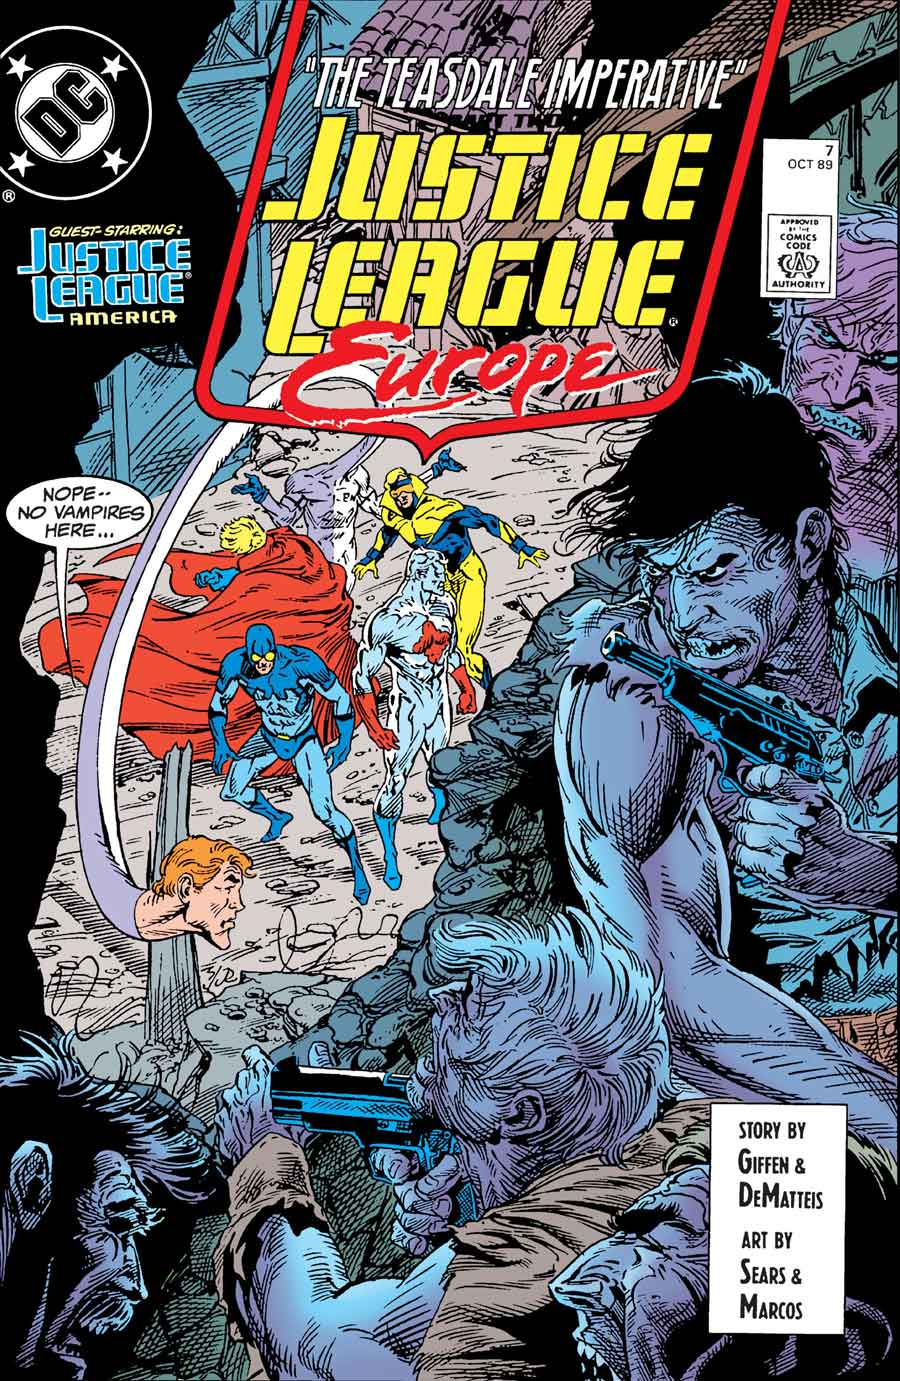 Justice League Europe #7 cover by Bart Sears and Joe Rubinstein (with corrected colors)